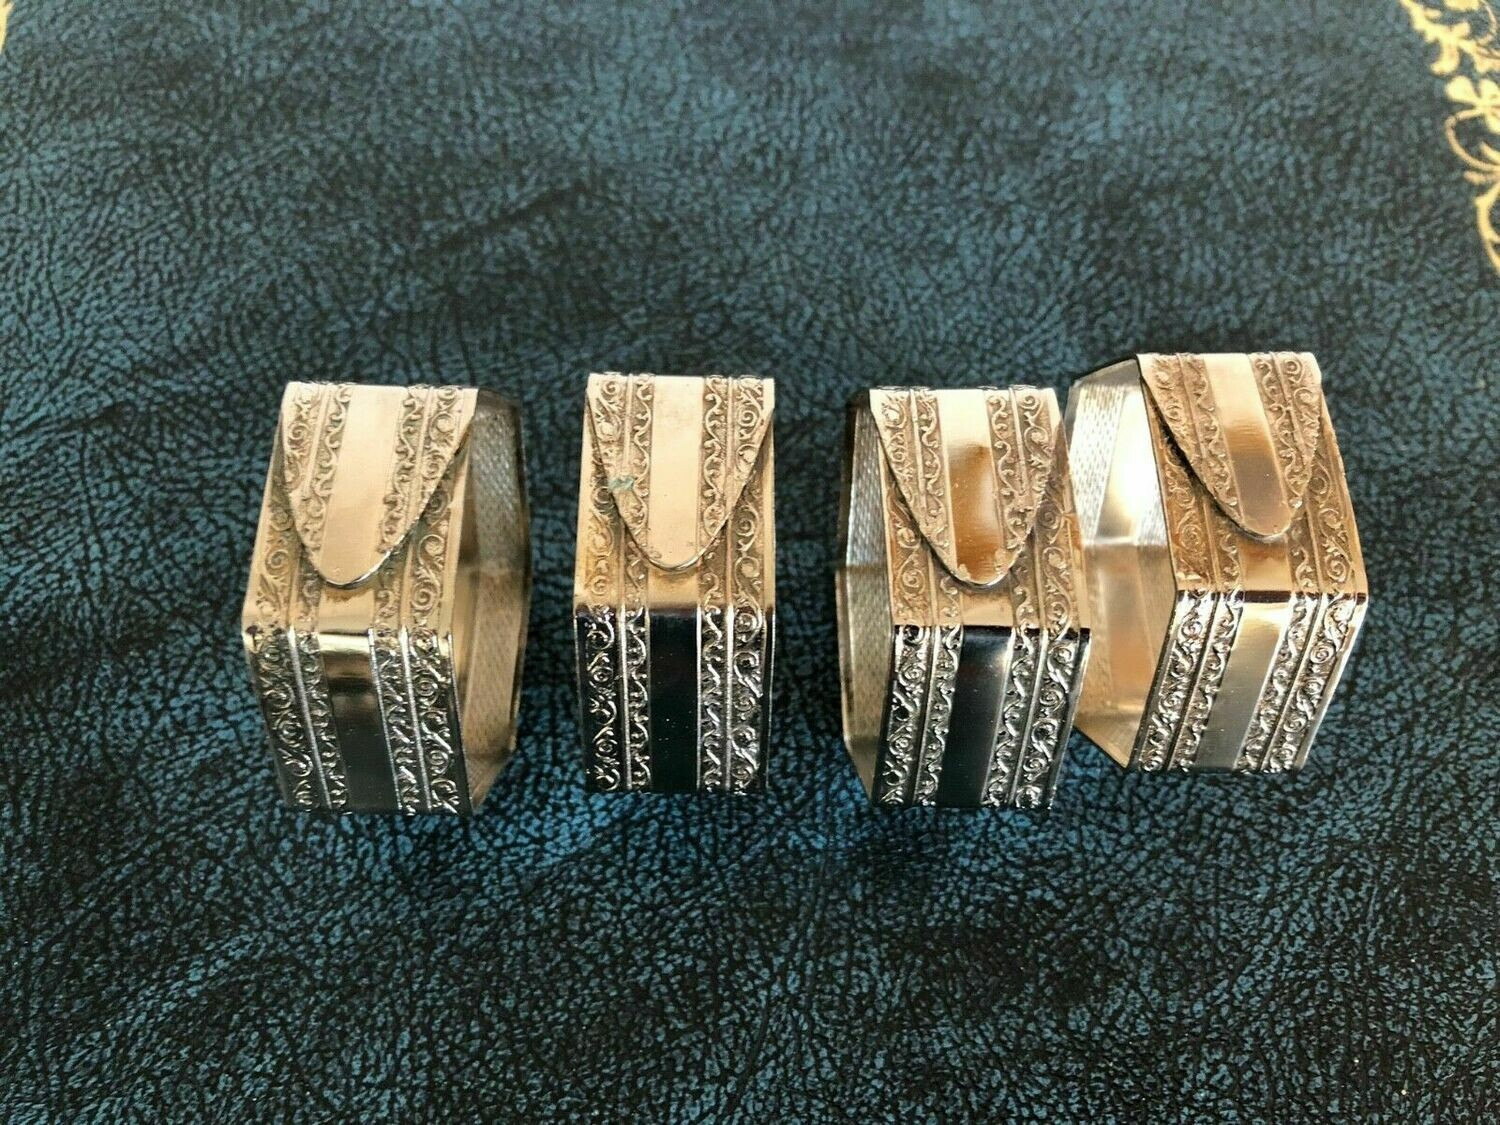 White Metal Napkin Rings - Unusual design, not silver. Set of 4